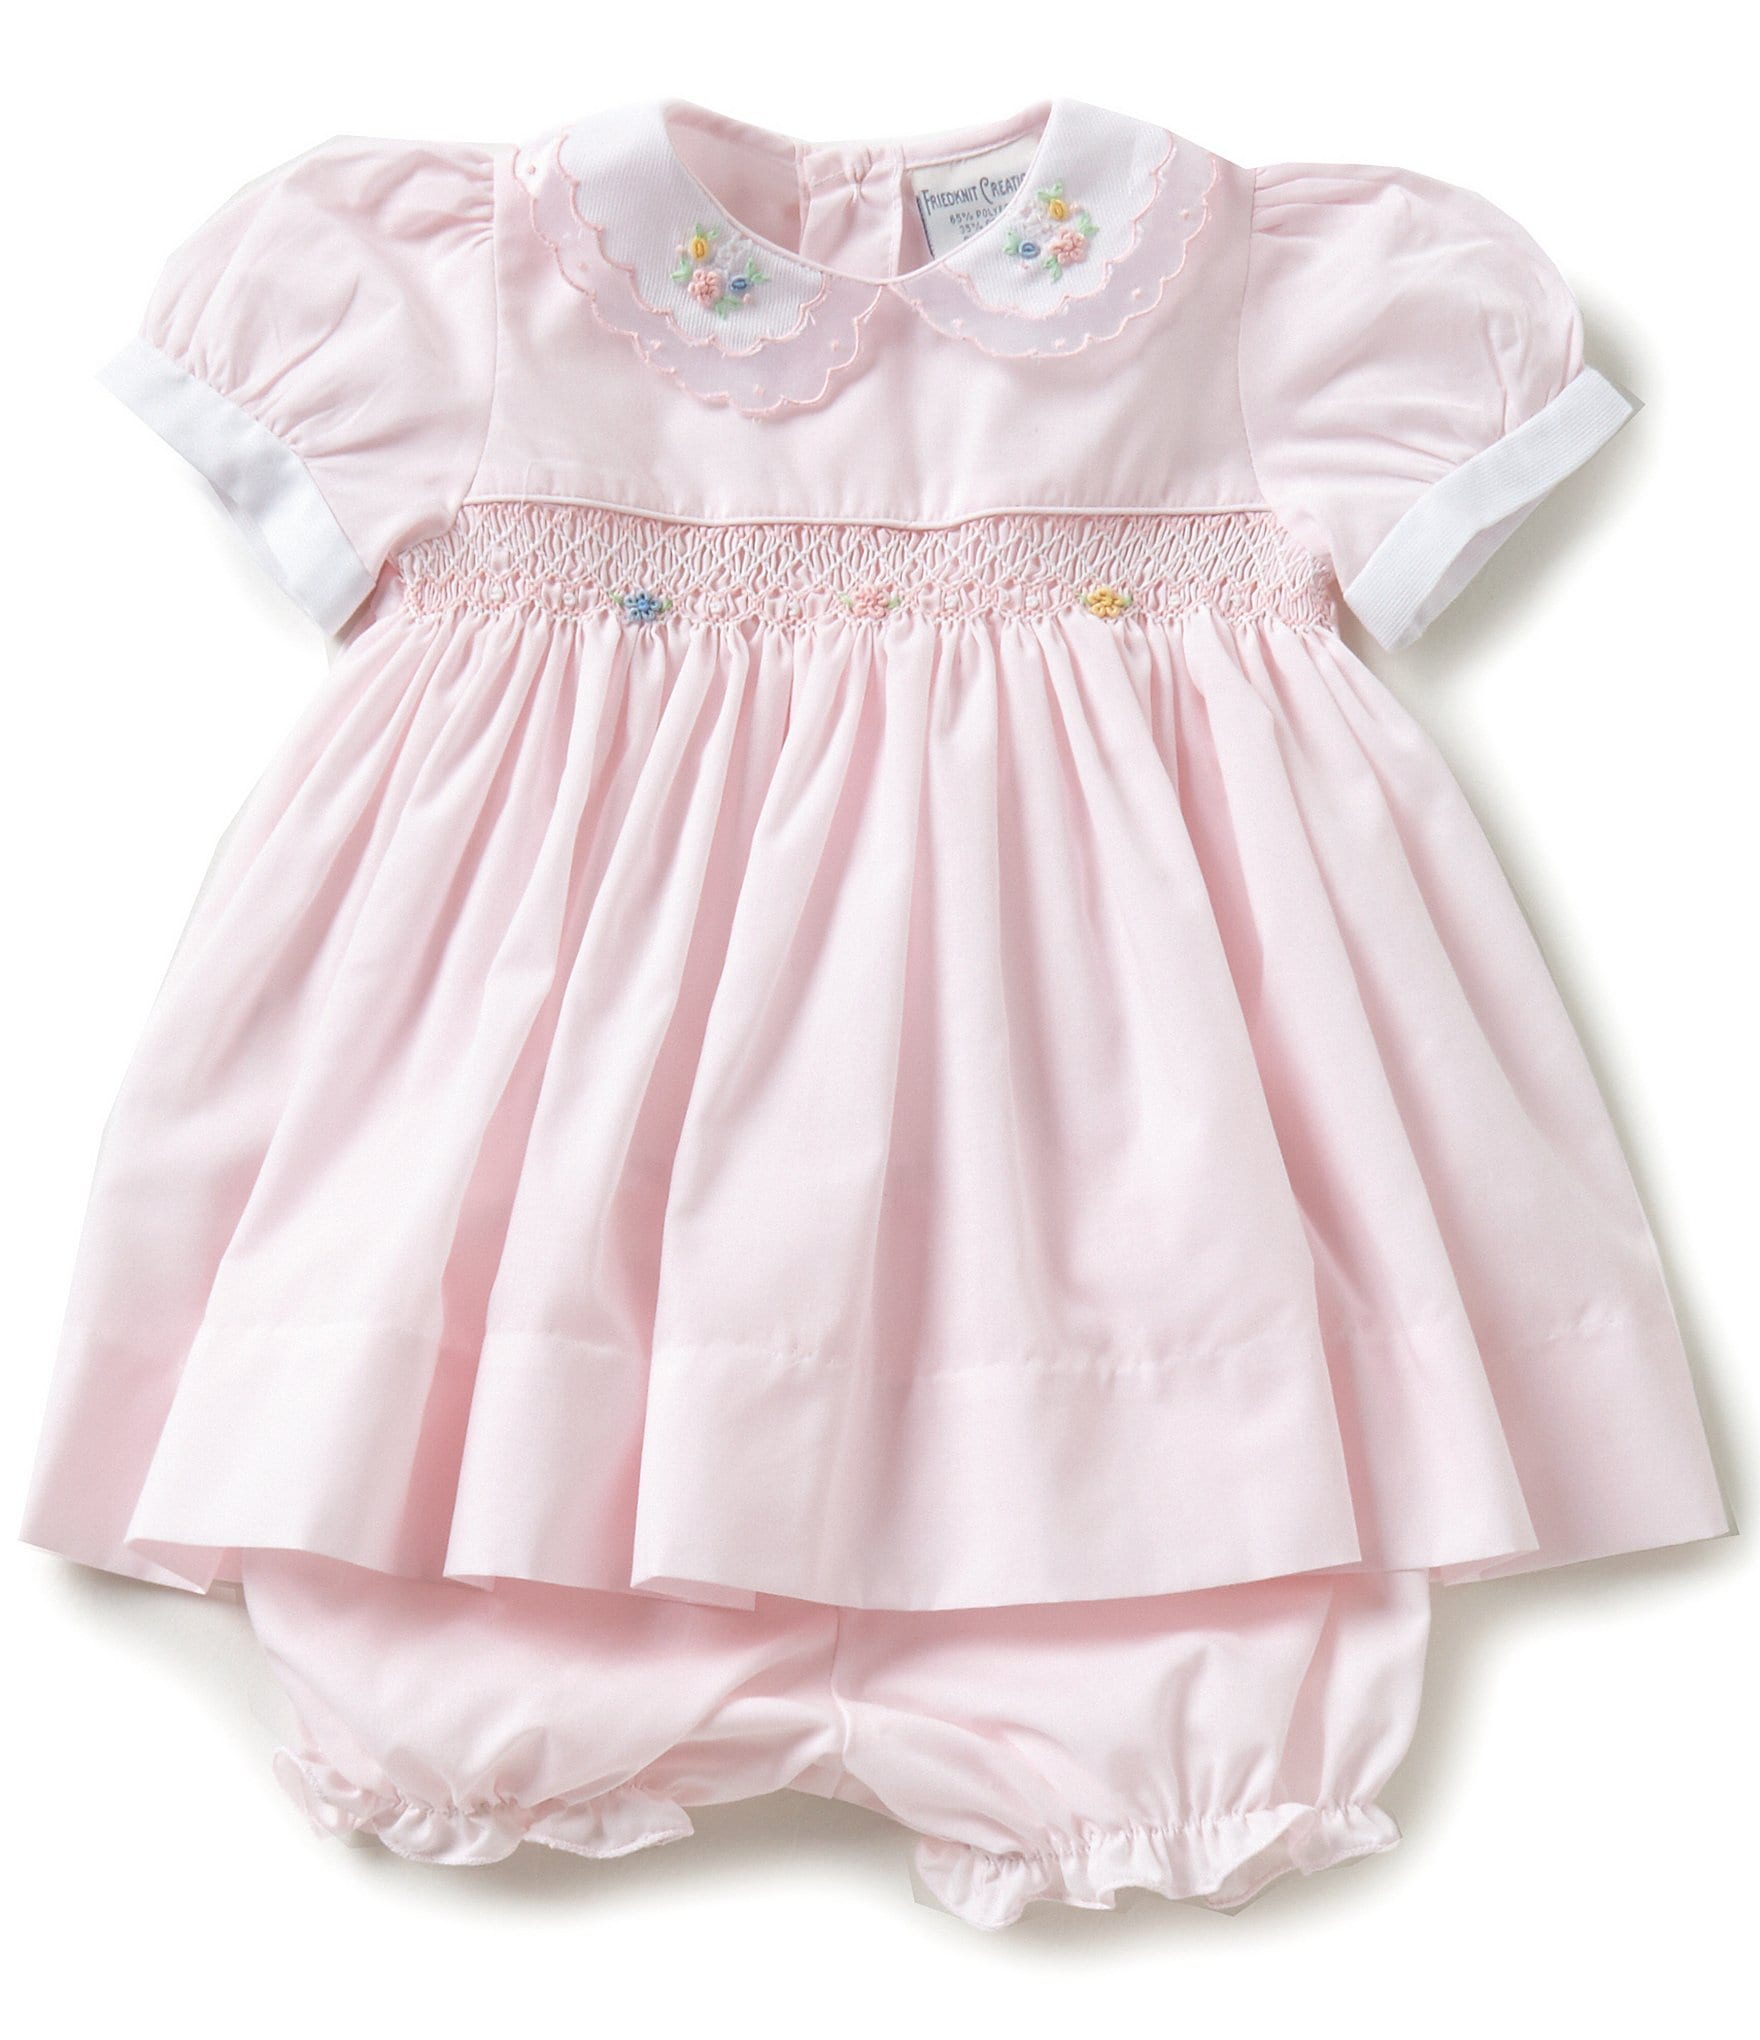 Friedknit Creations Baby Girls 3-9 Months Floral ...